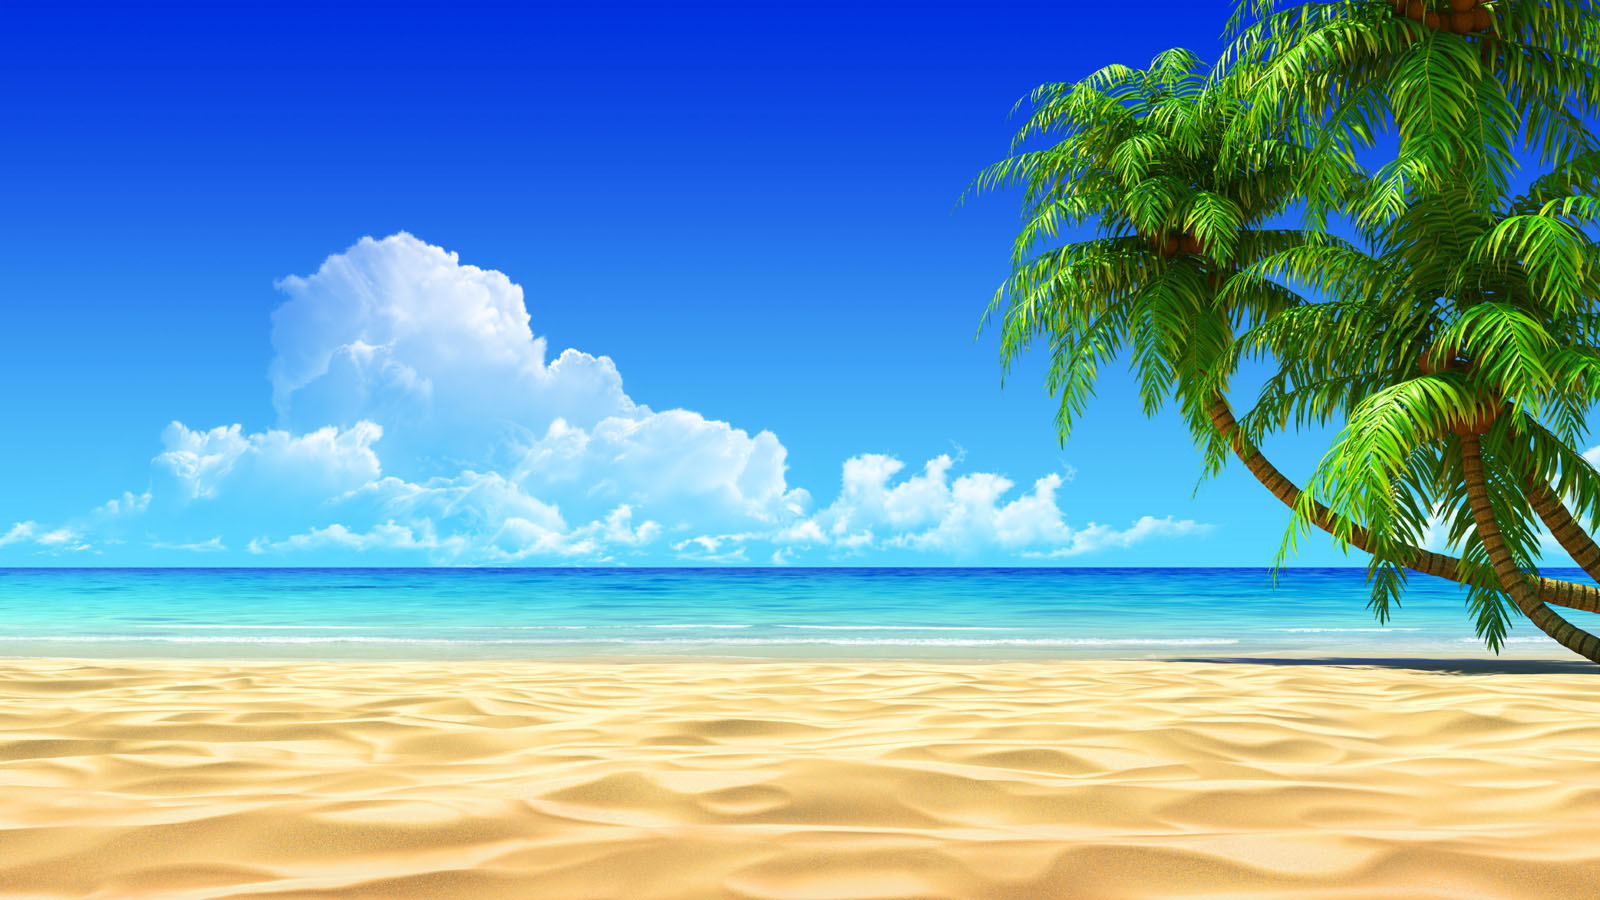 Photo Wallpaper beach wallpaper